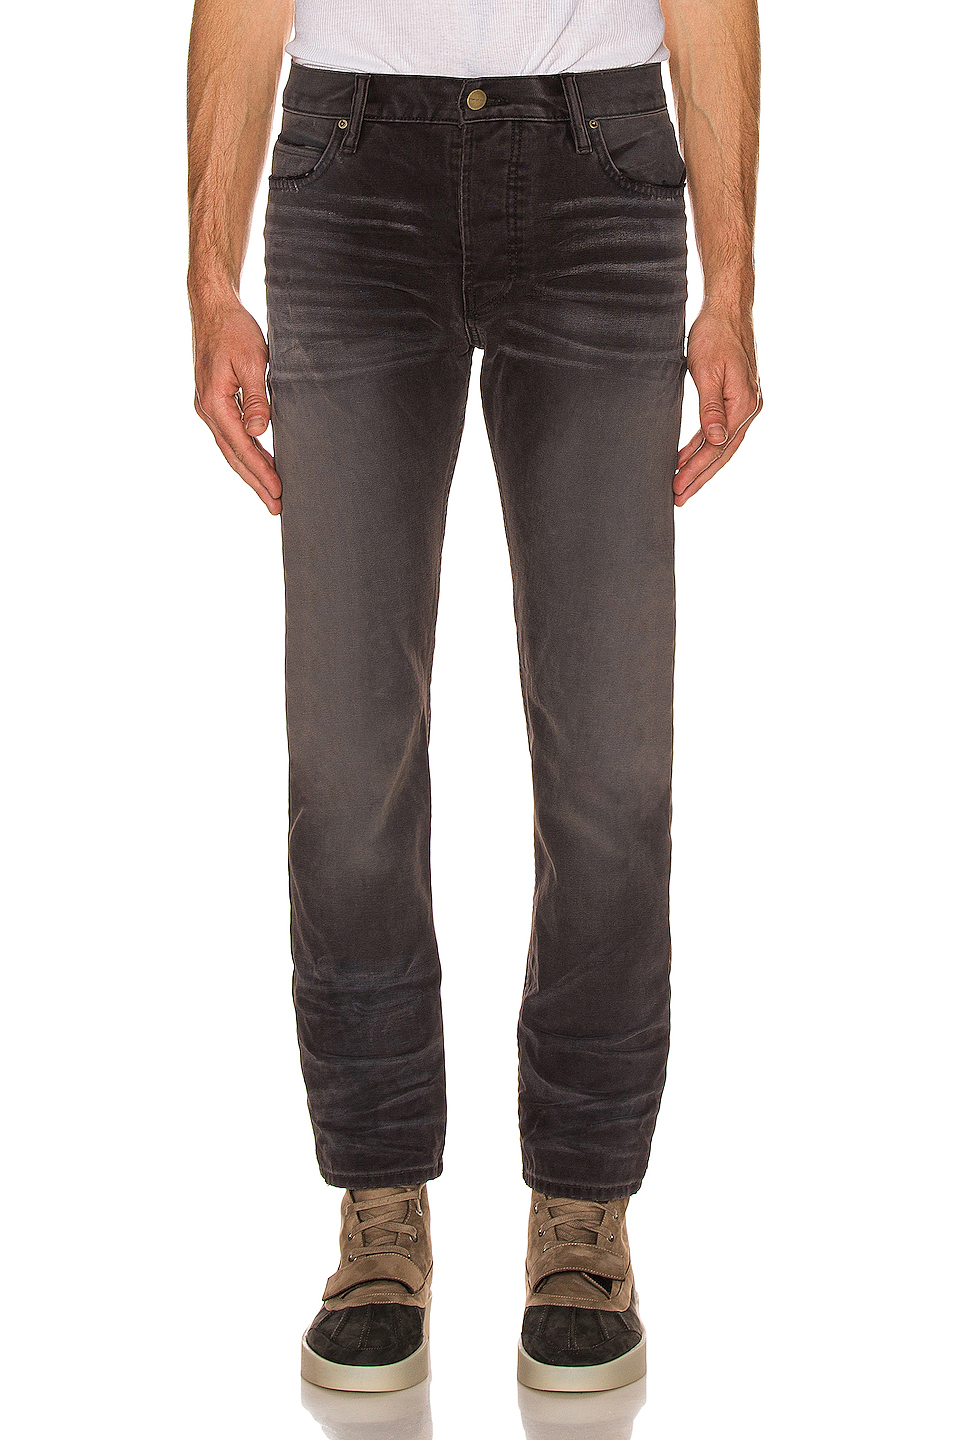 Fear of God Canvas Jean